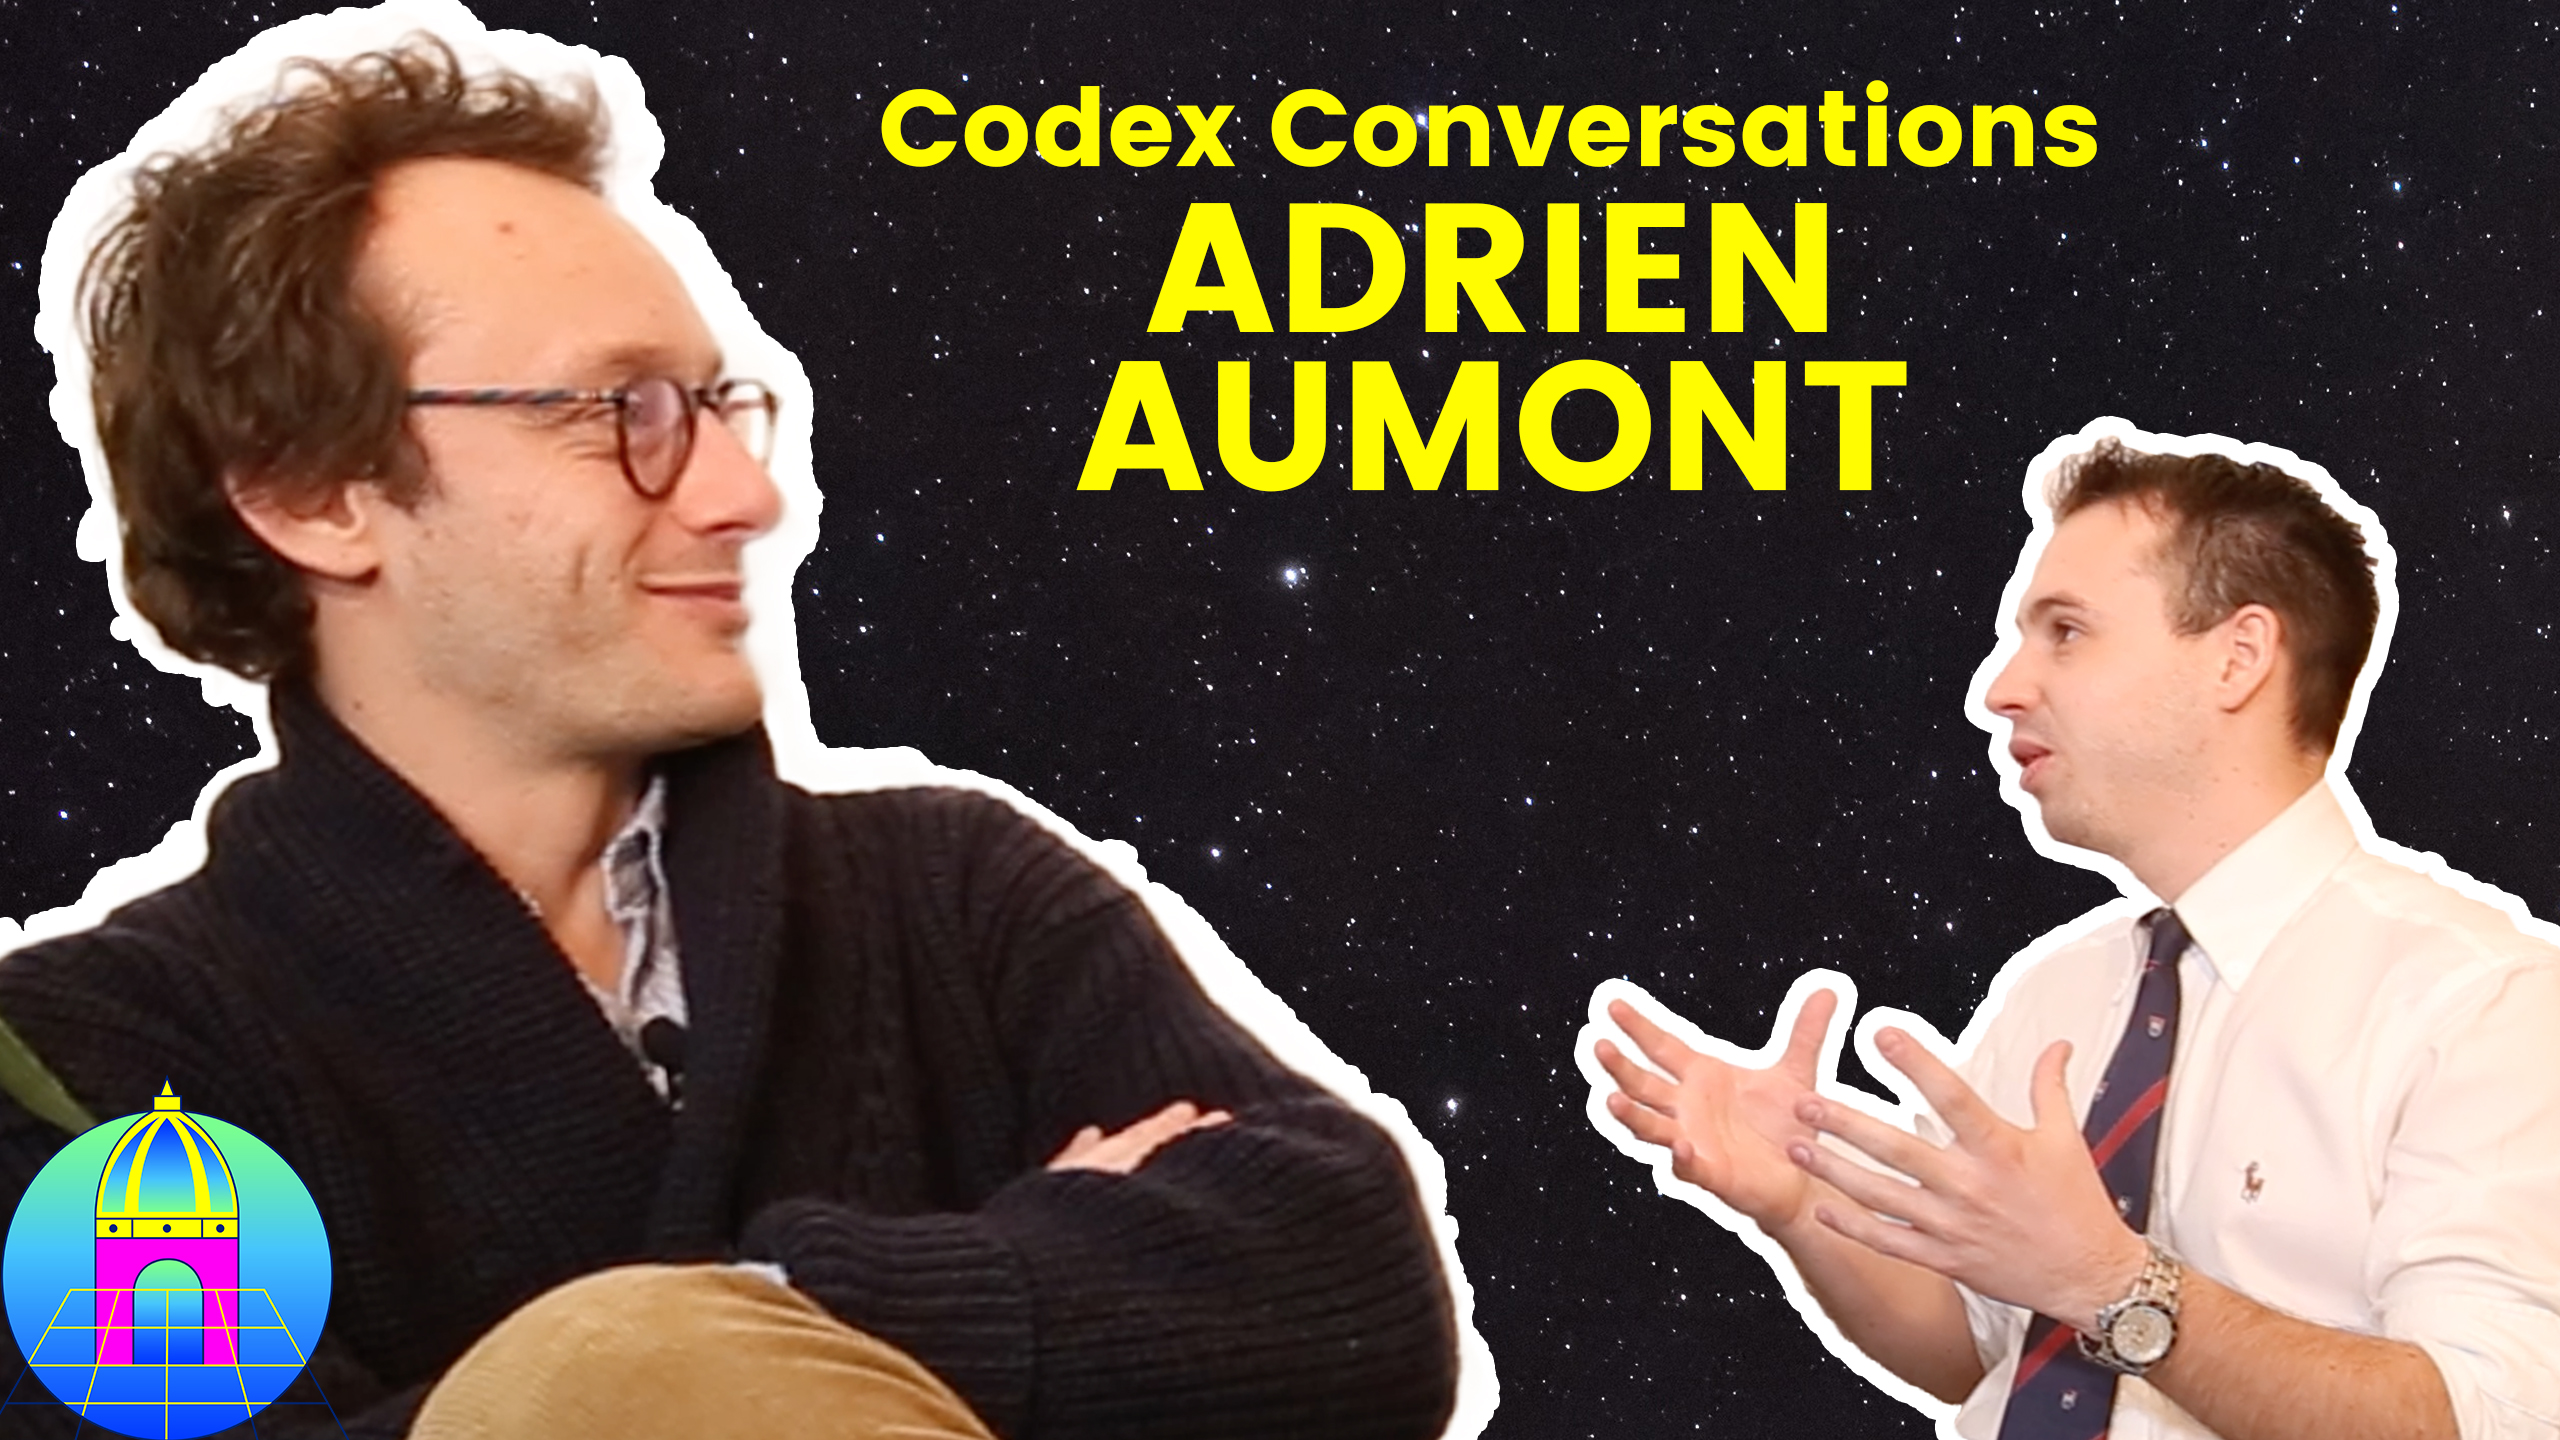 CODEX CONVERSATIONS 02 ✖️ ADRIEN AUMONT